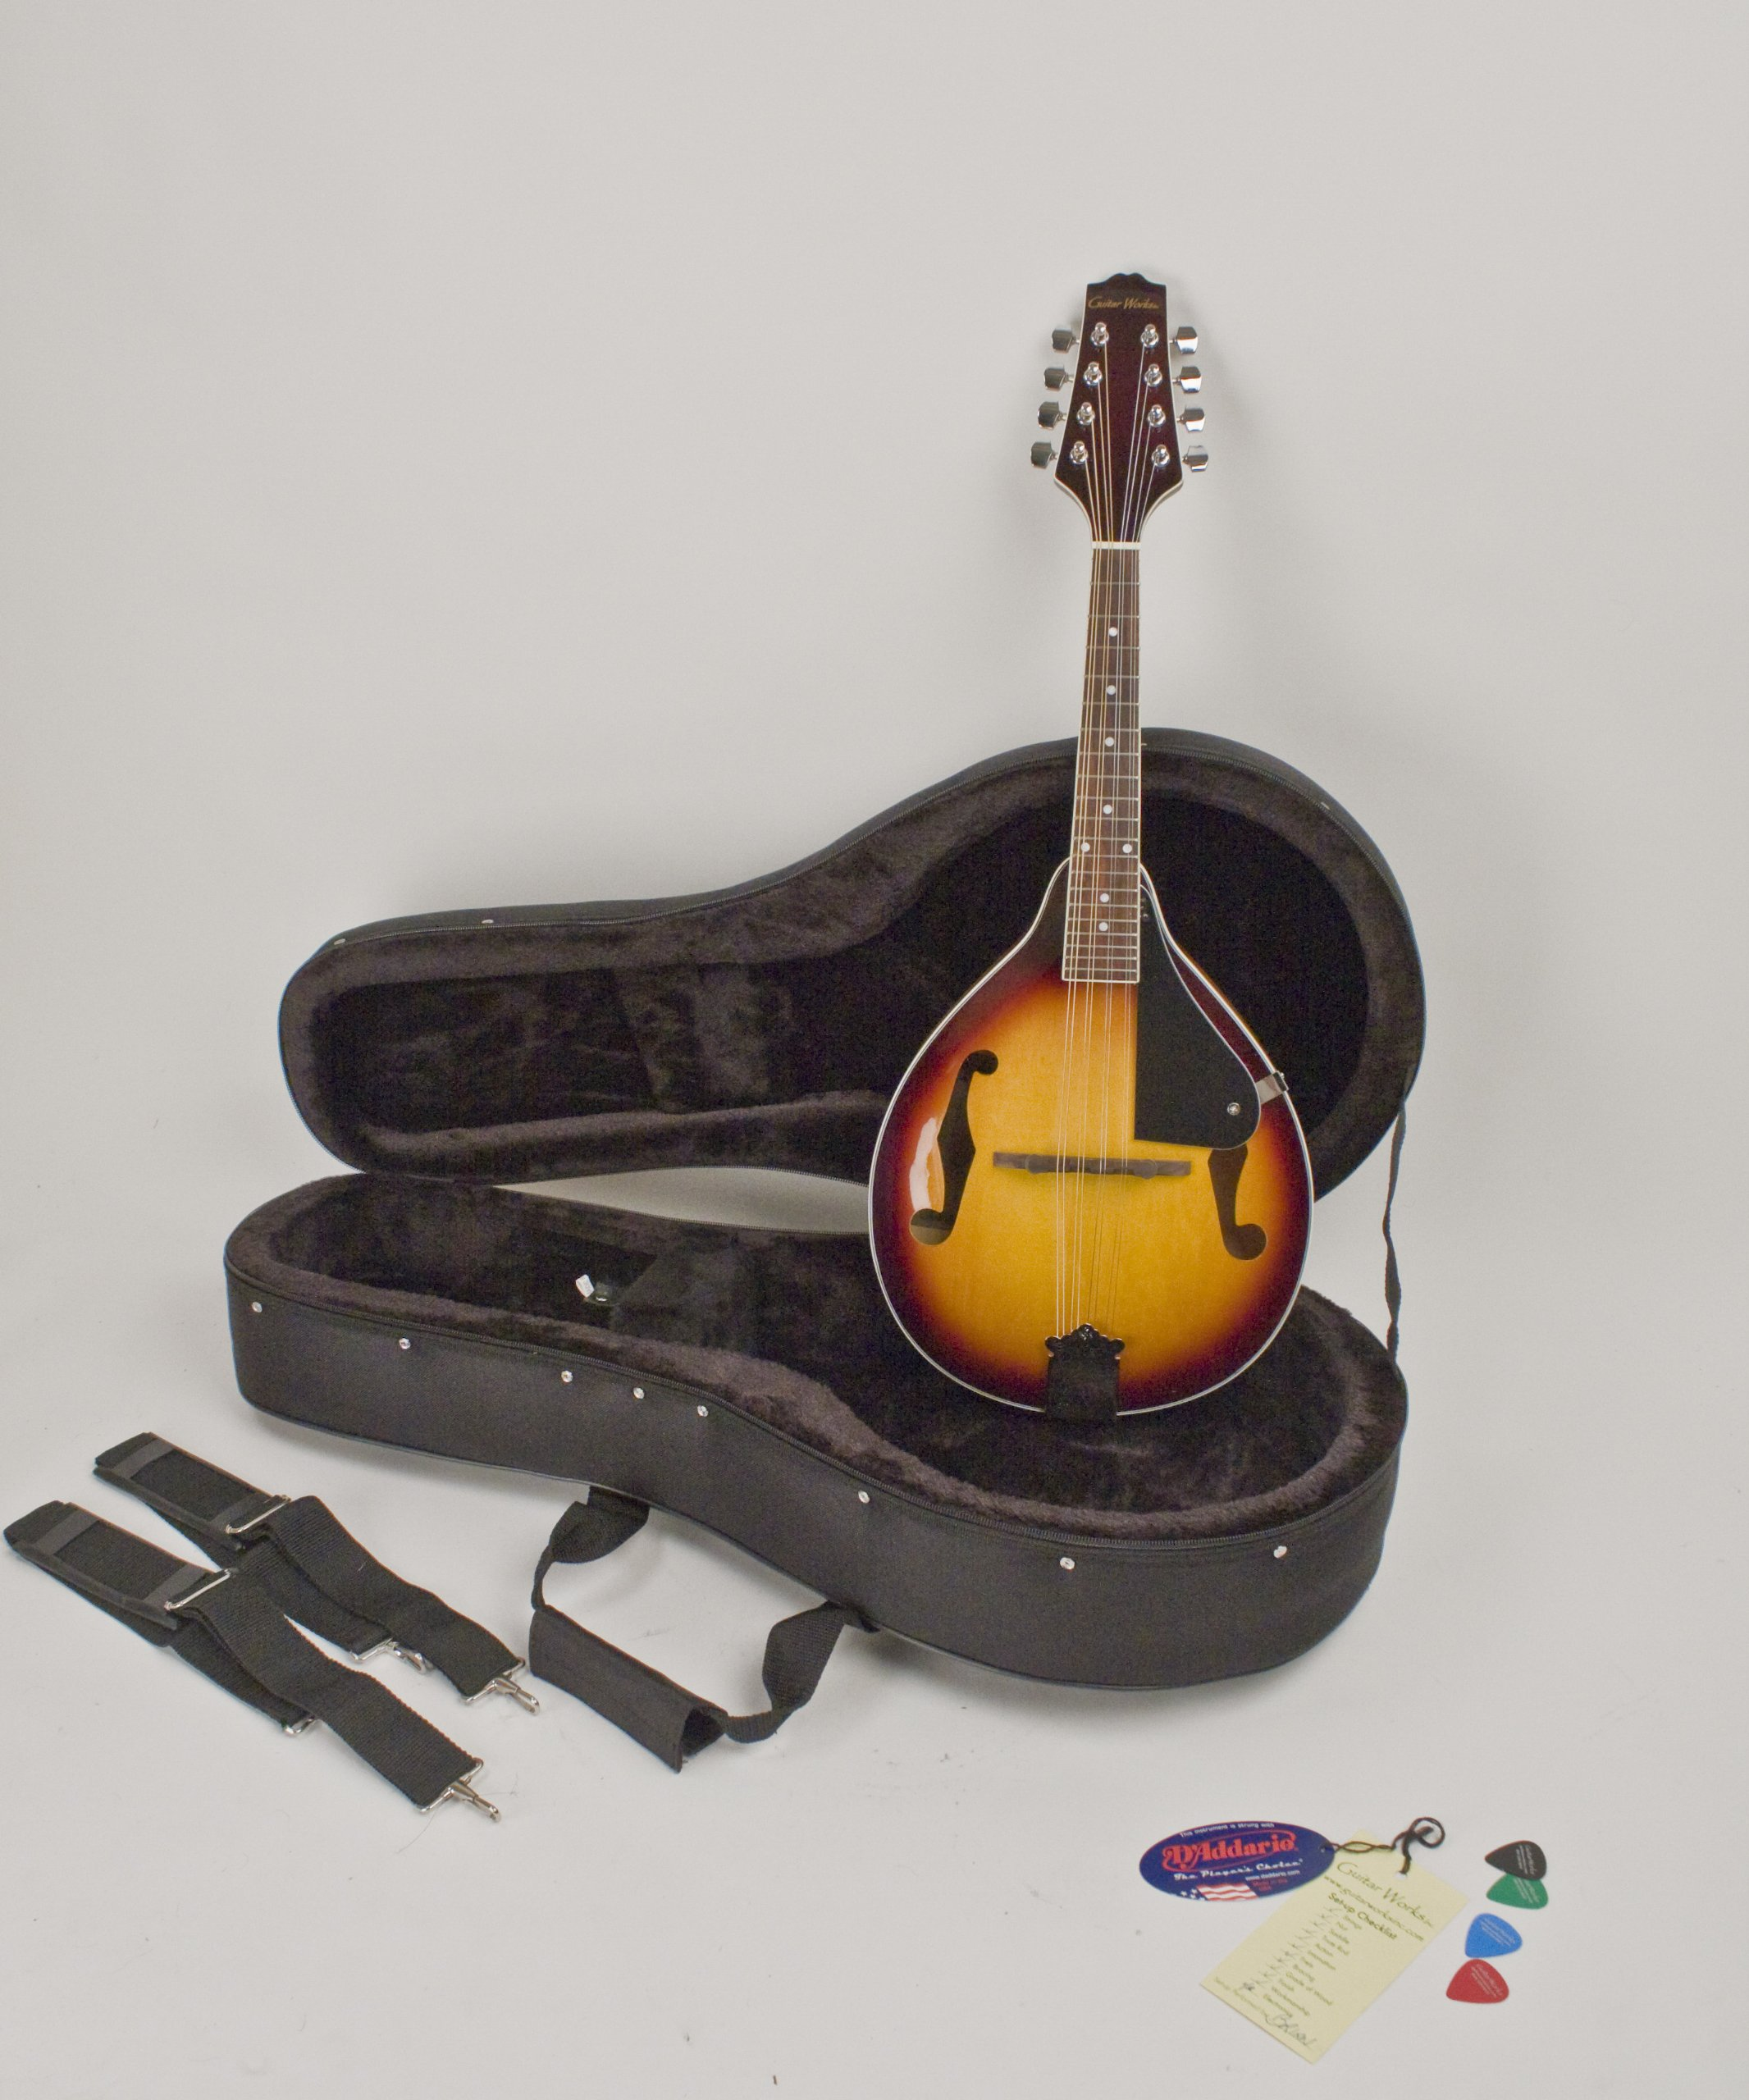 A Style Mandolin Sunburst Finish Professionally Set-Up In My Shop For Proper & Easy Play Hard Featherlite Case Included by Guitar Works, Inc.